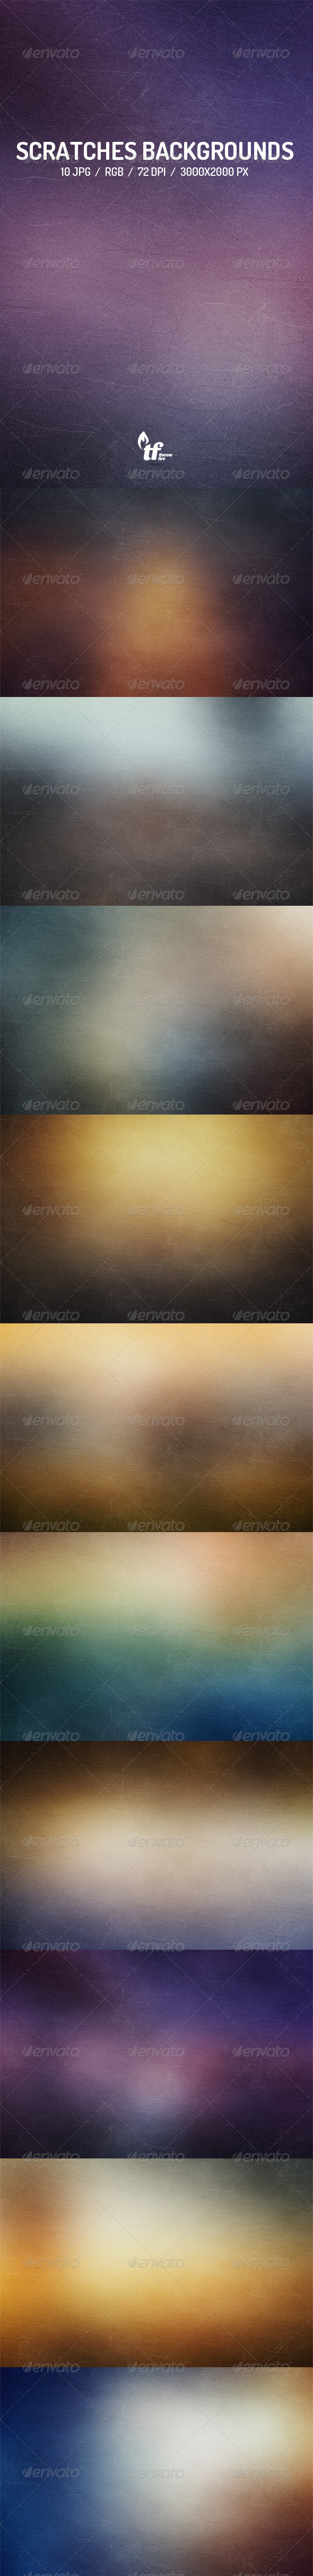 GraphicRiver Scratches Backgrounds 8536062